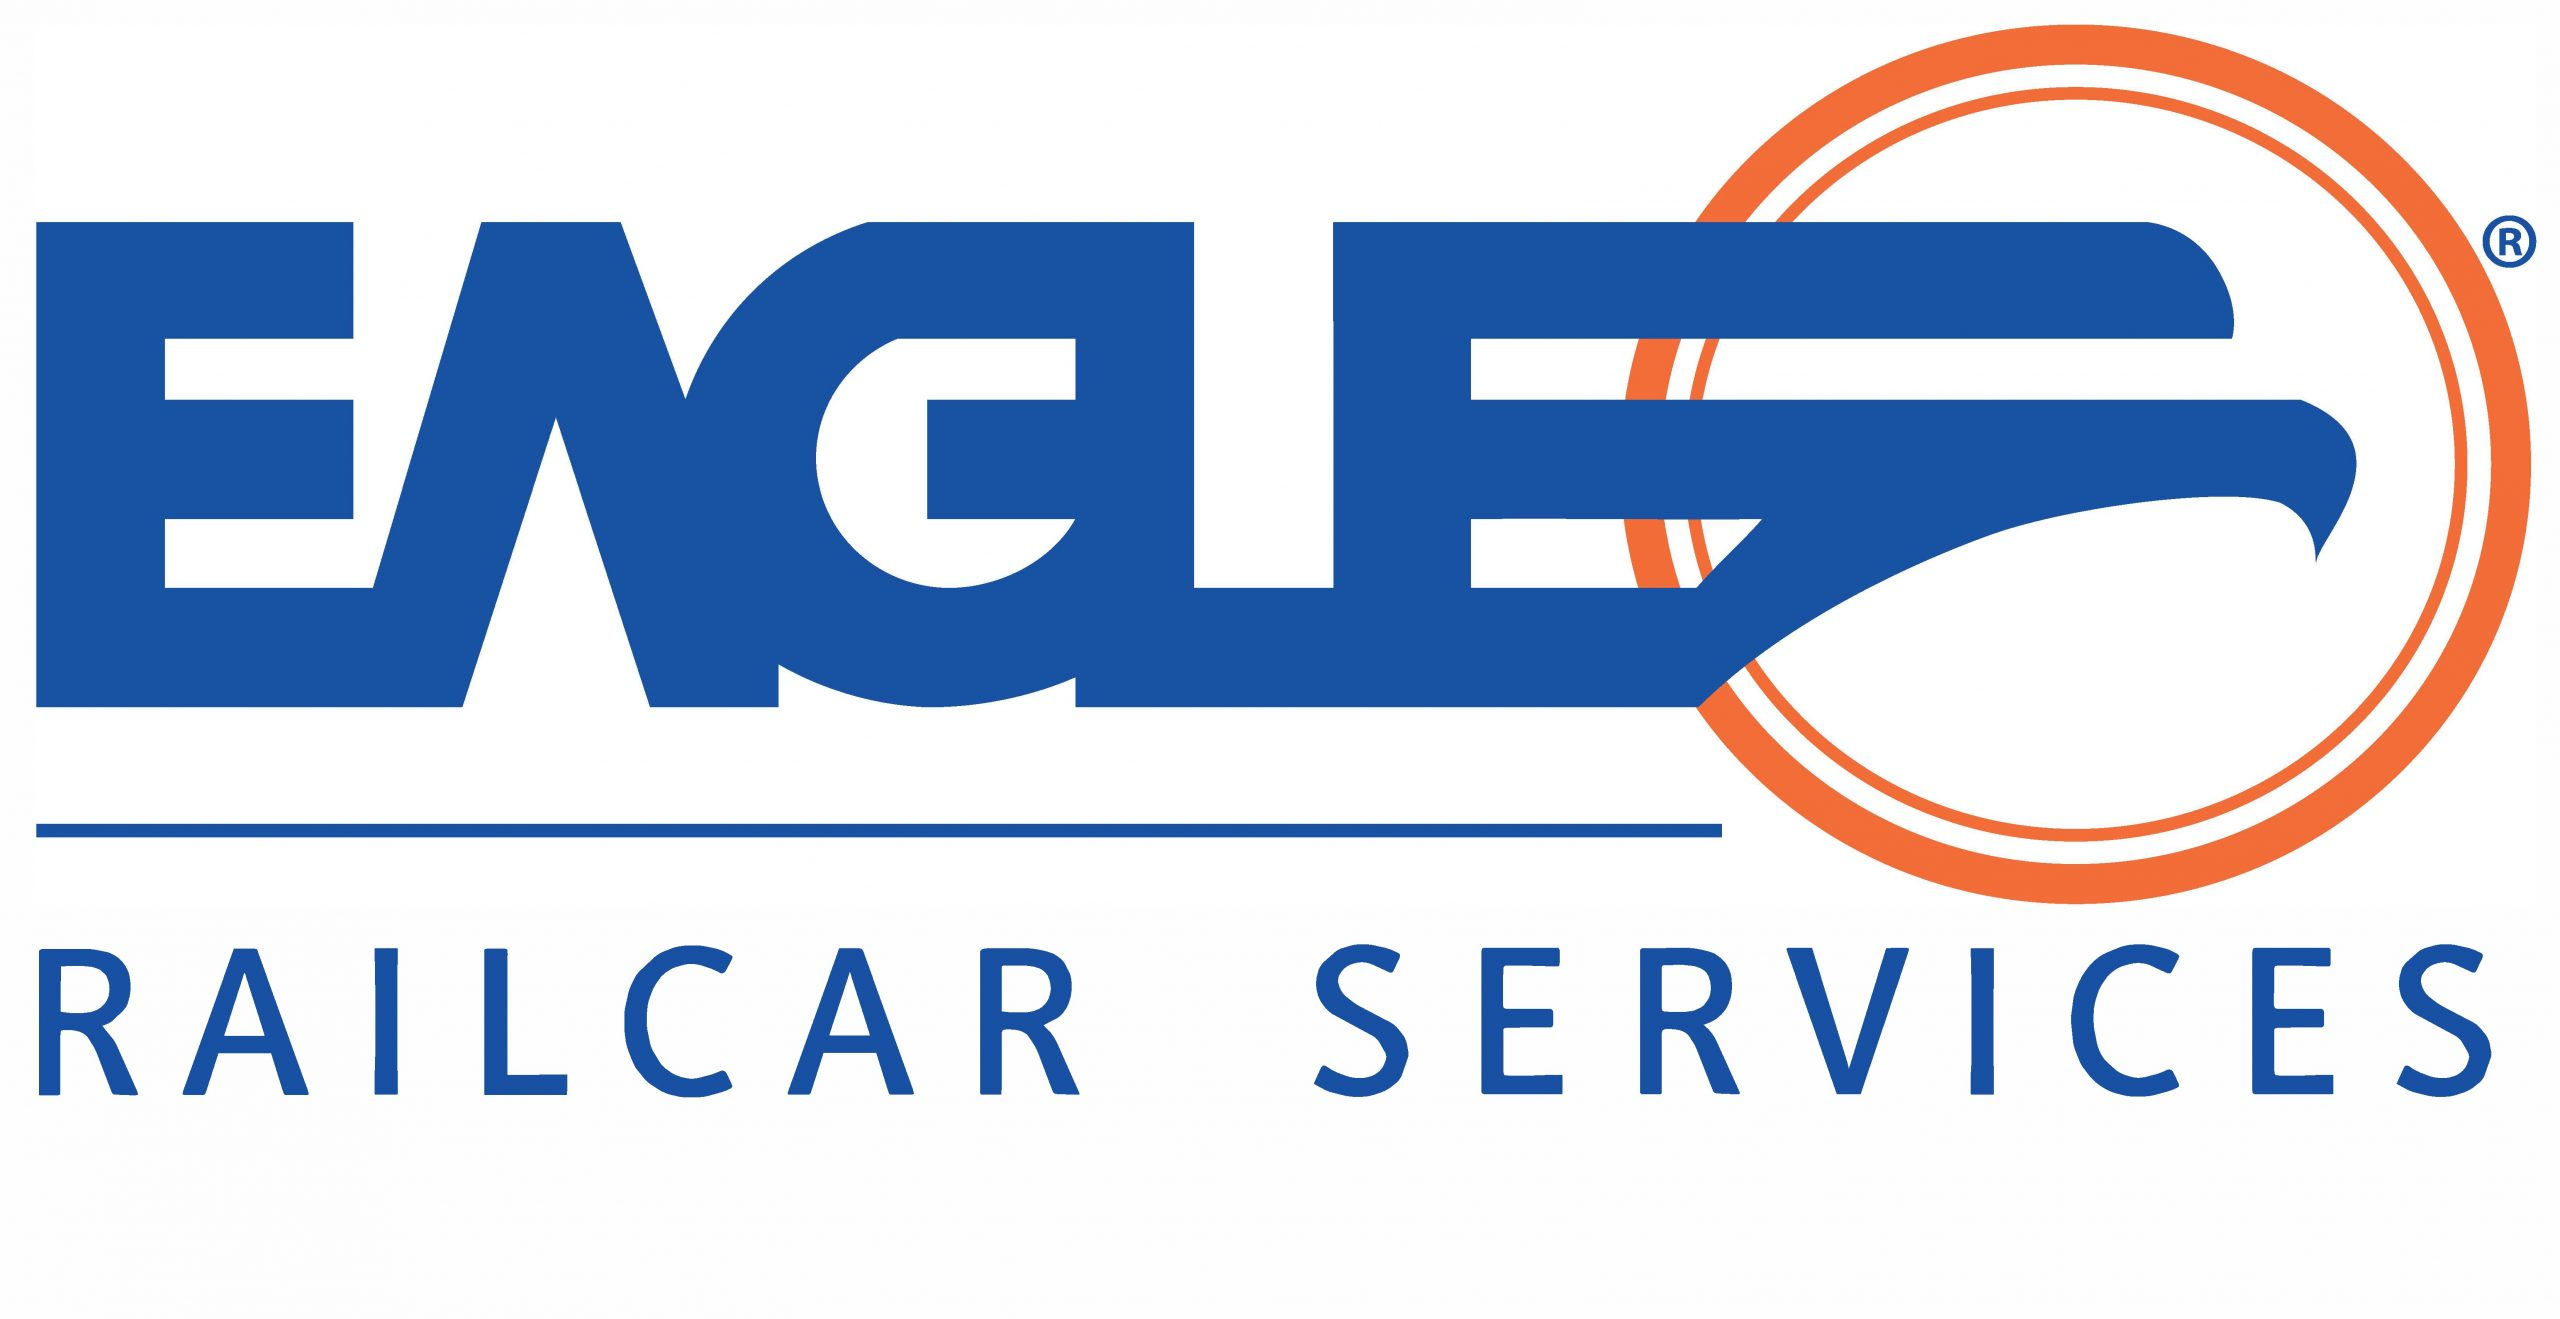 EAGLE RAILCAR SERVICES LOGO